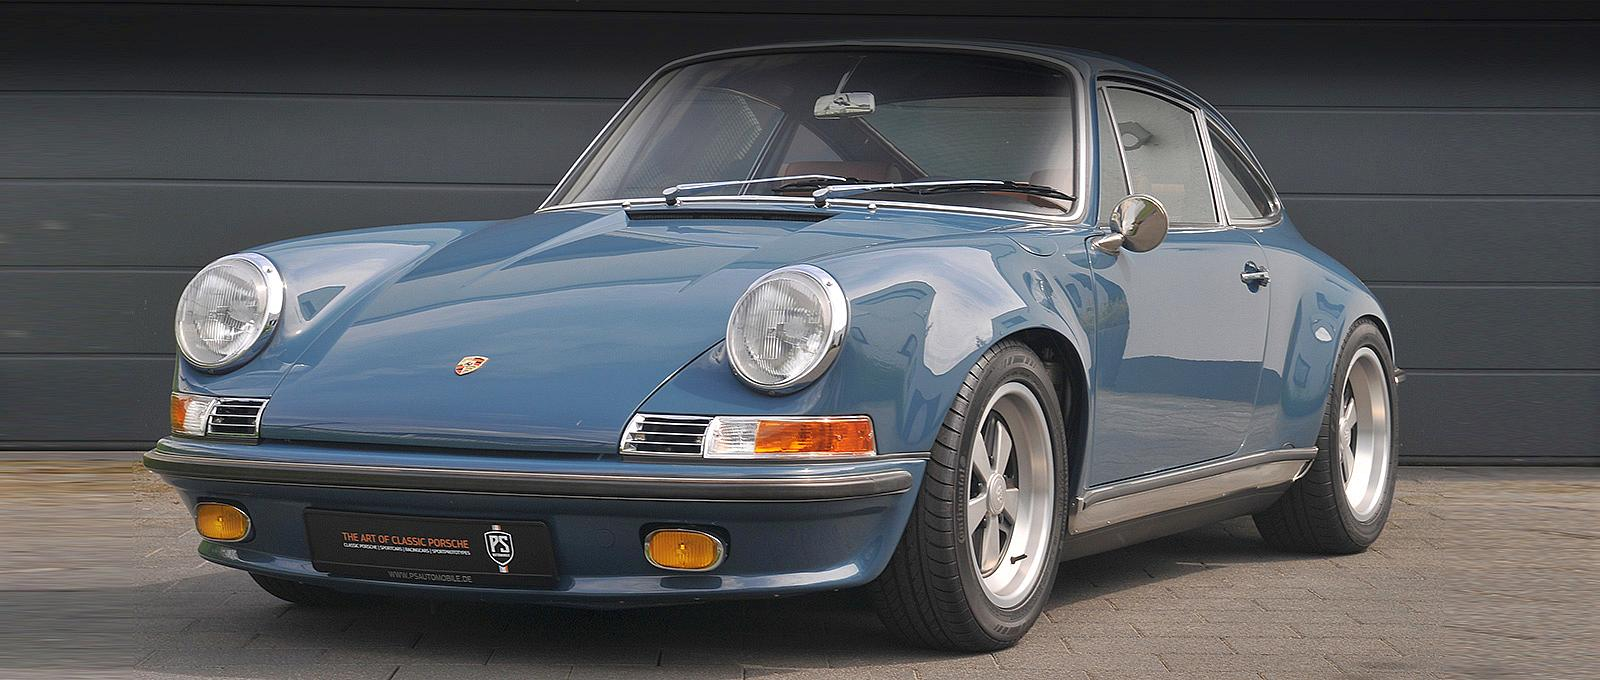 Porsche 911 ST RECONSTRUCTION